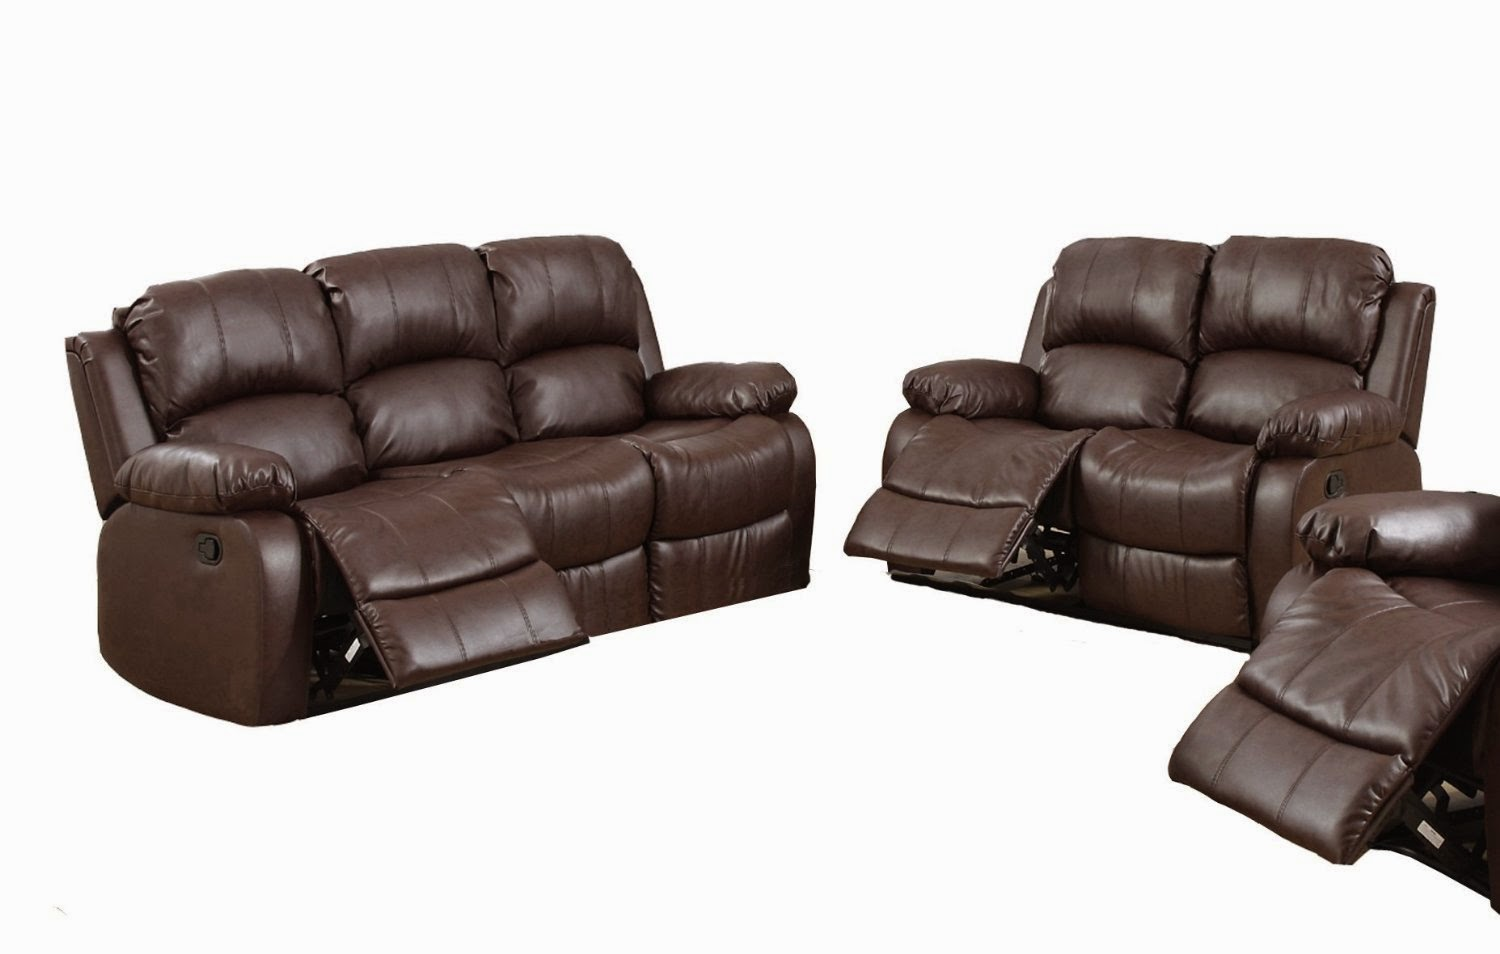 Cheap reclining sofa and loveseat sets april 2015 Cheap sofas and loveseats sets